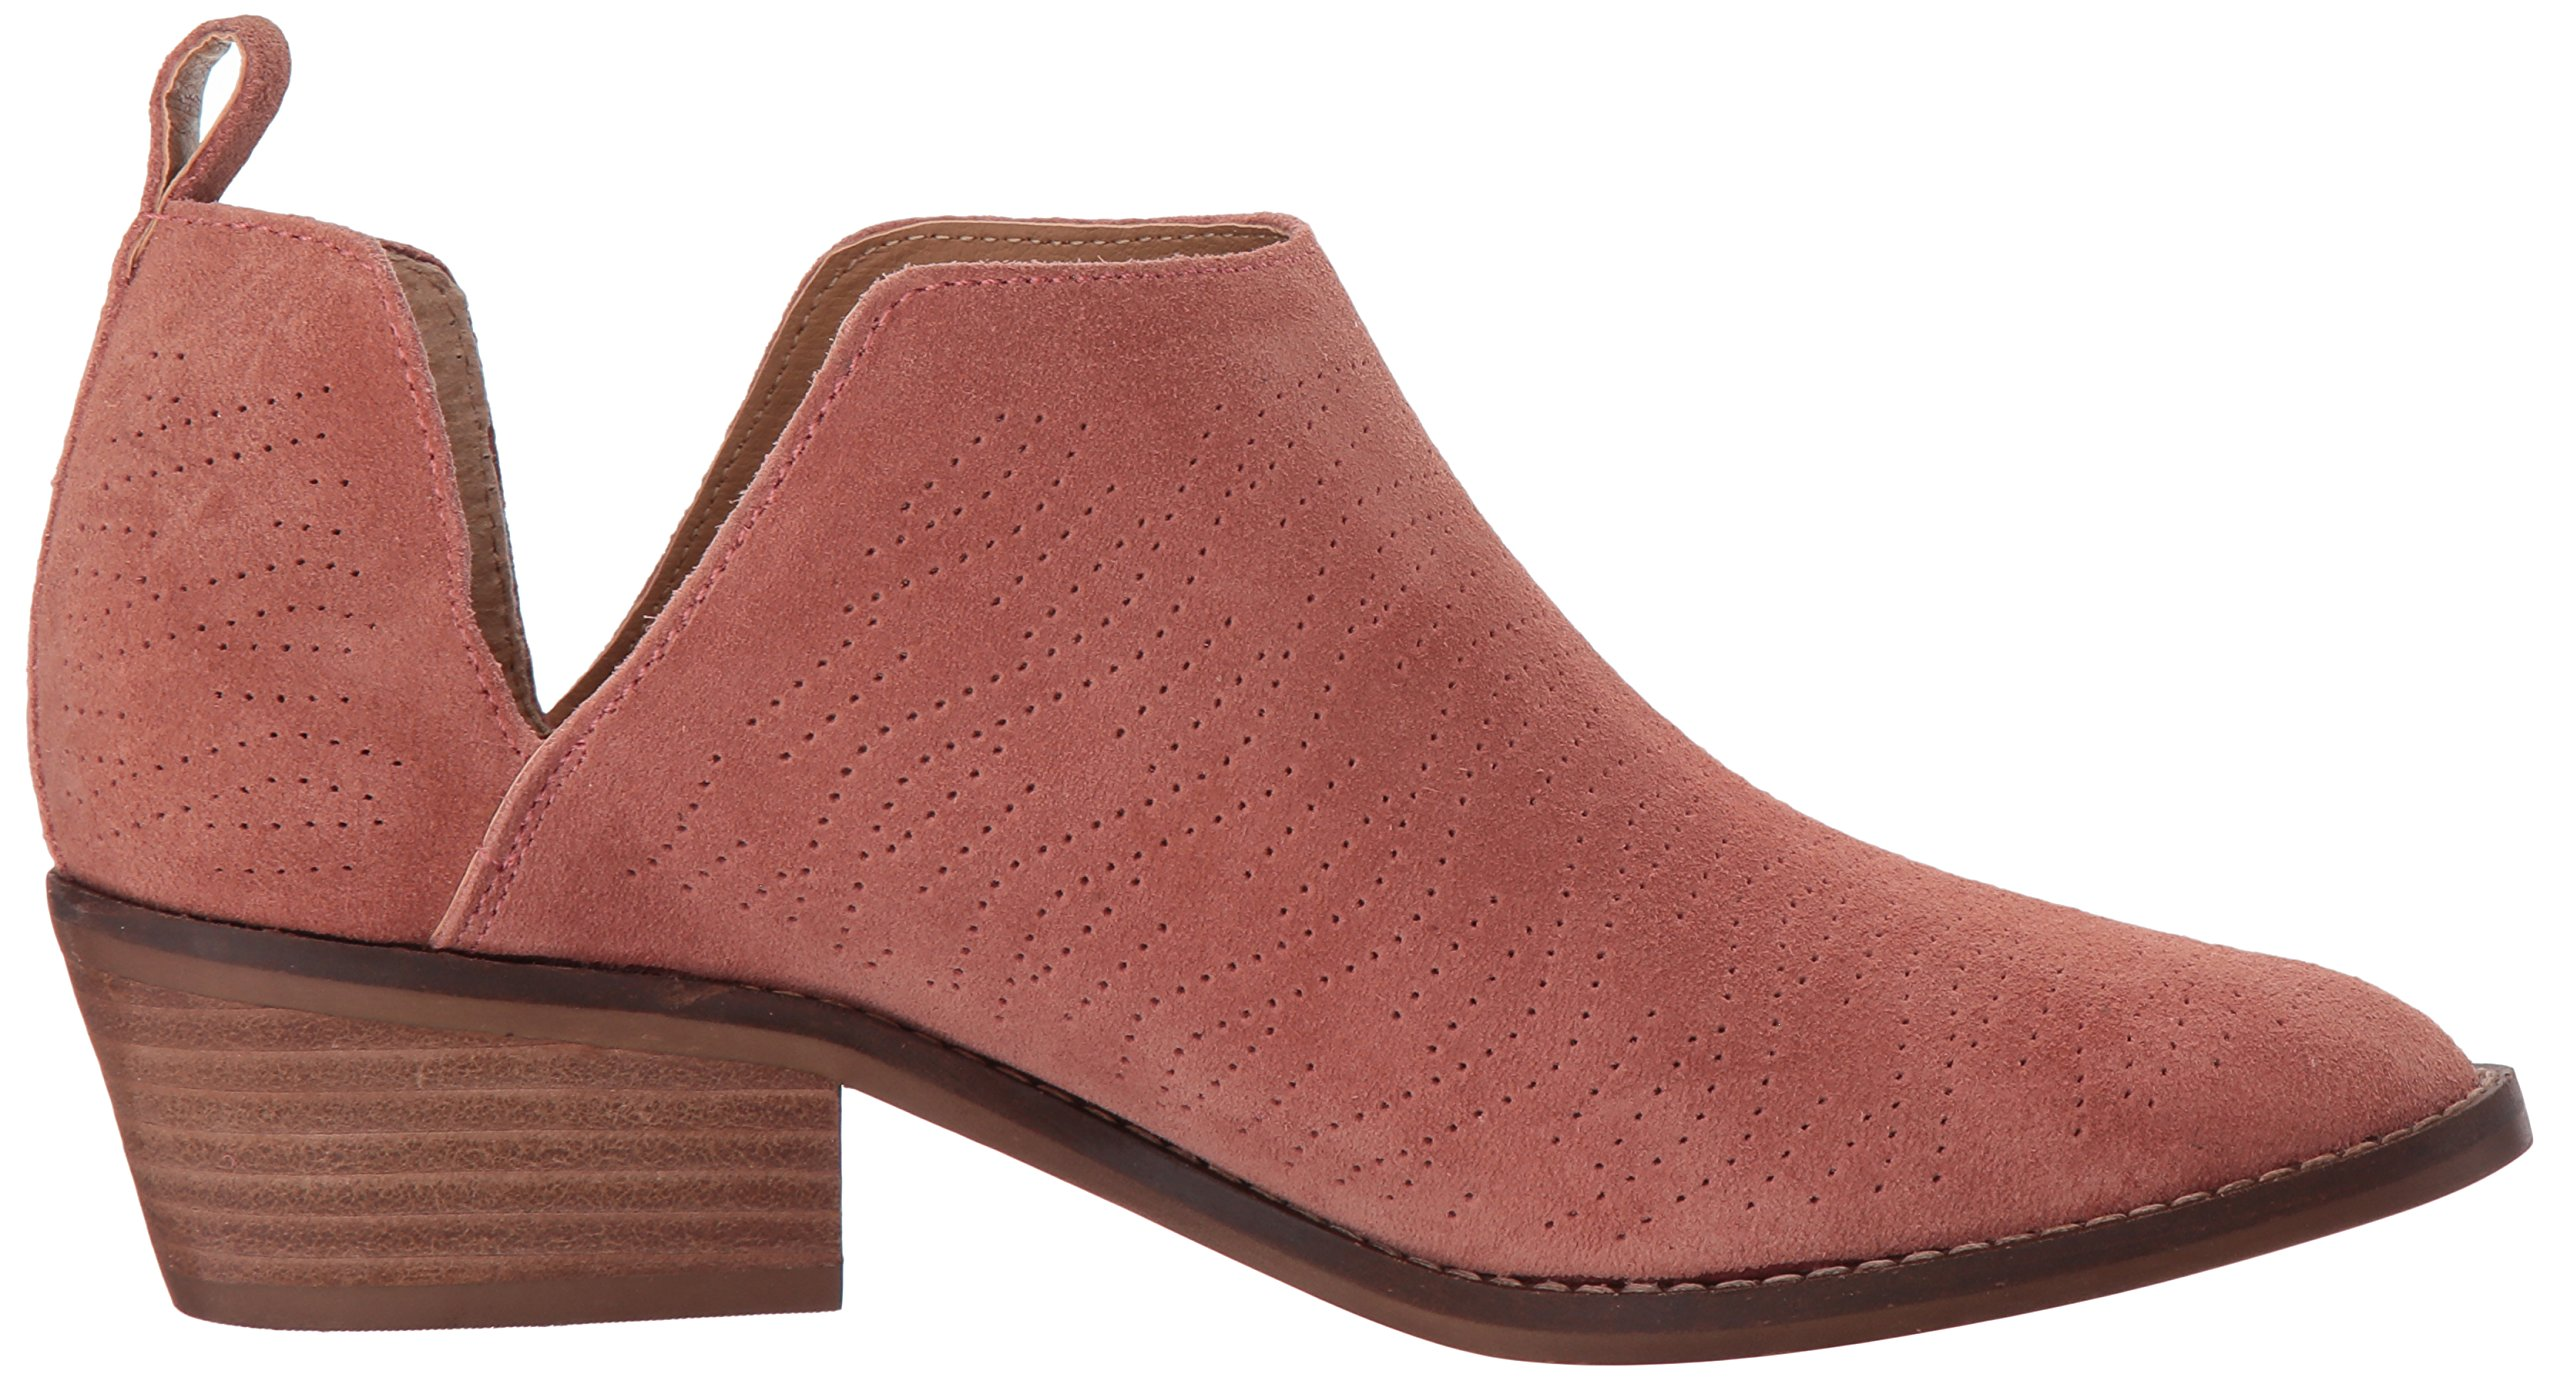 Lucky Brand Women's Fayth Ankle Boot, Canyon Rose, 8 M US by Lucky Brand (Image #6)